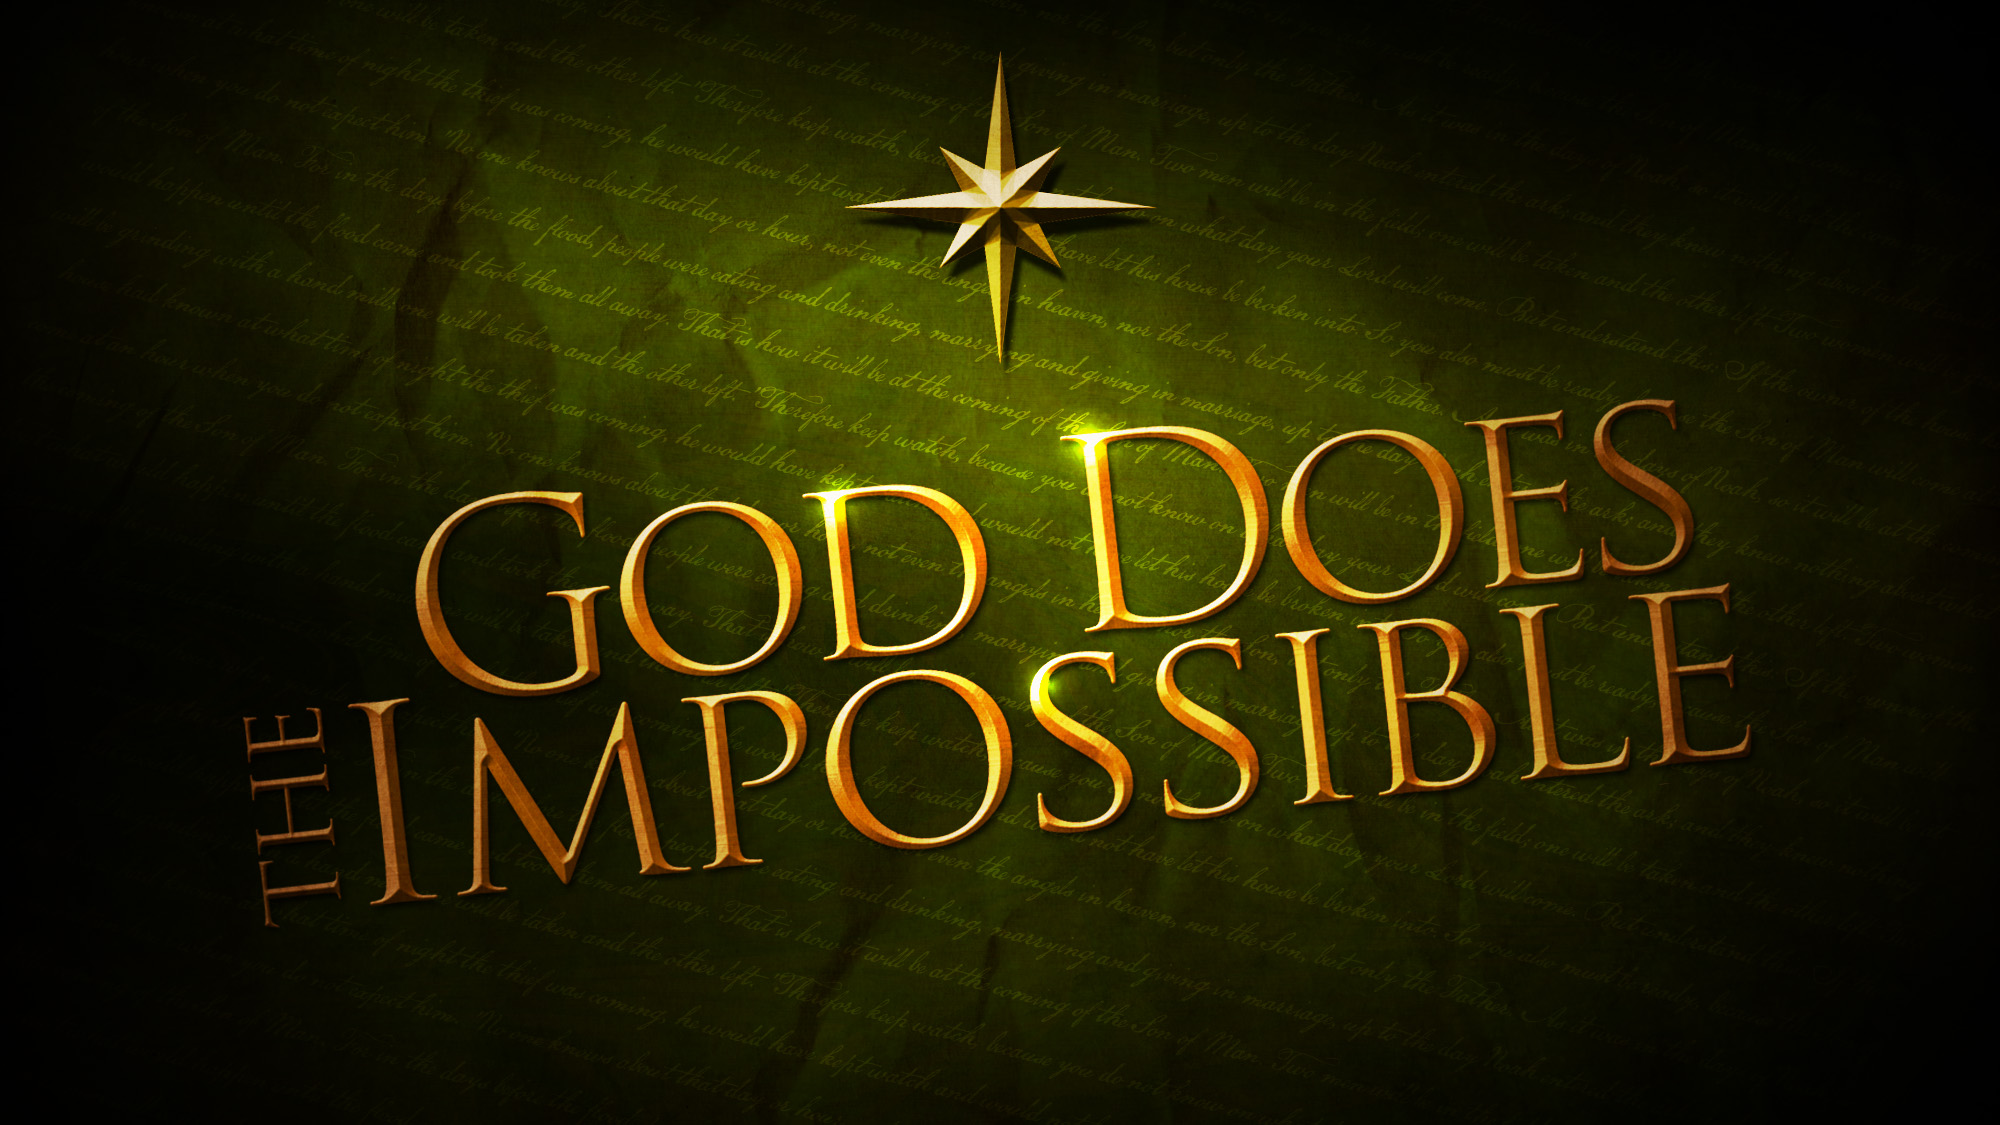 God does the impossible